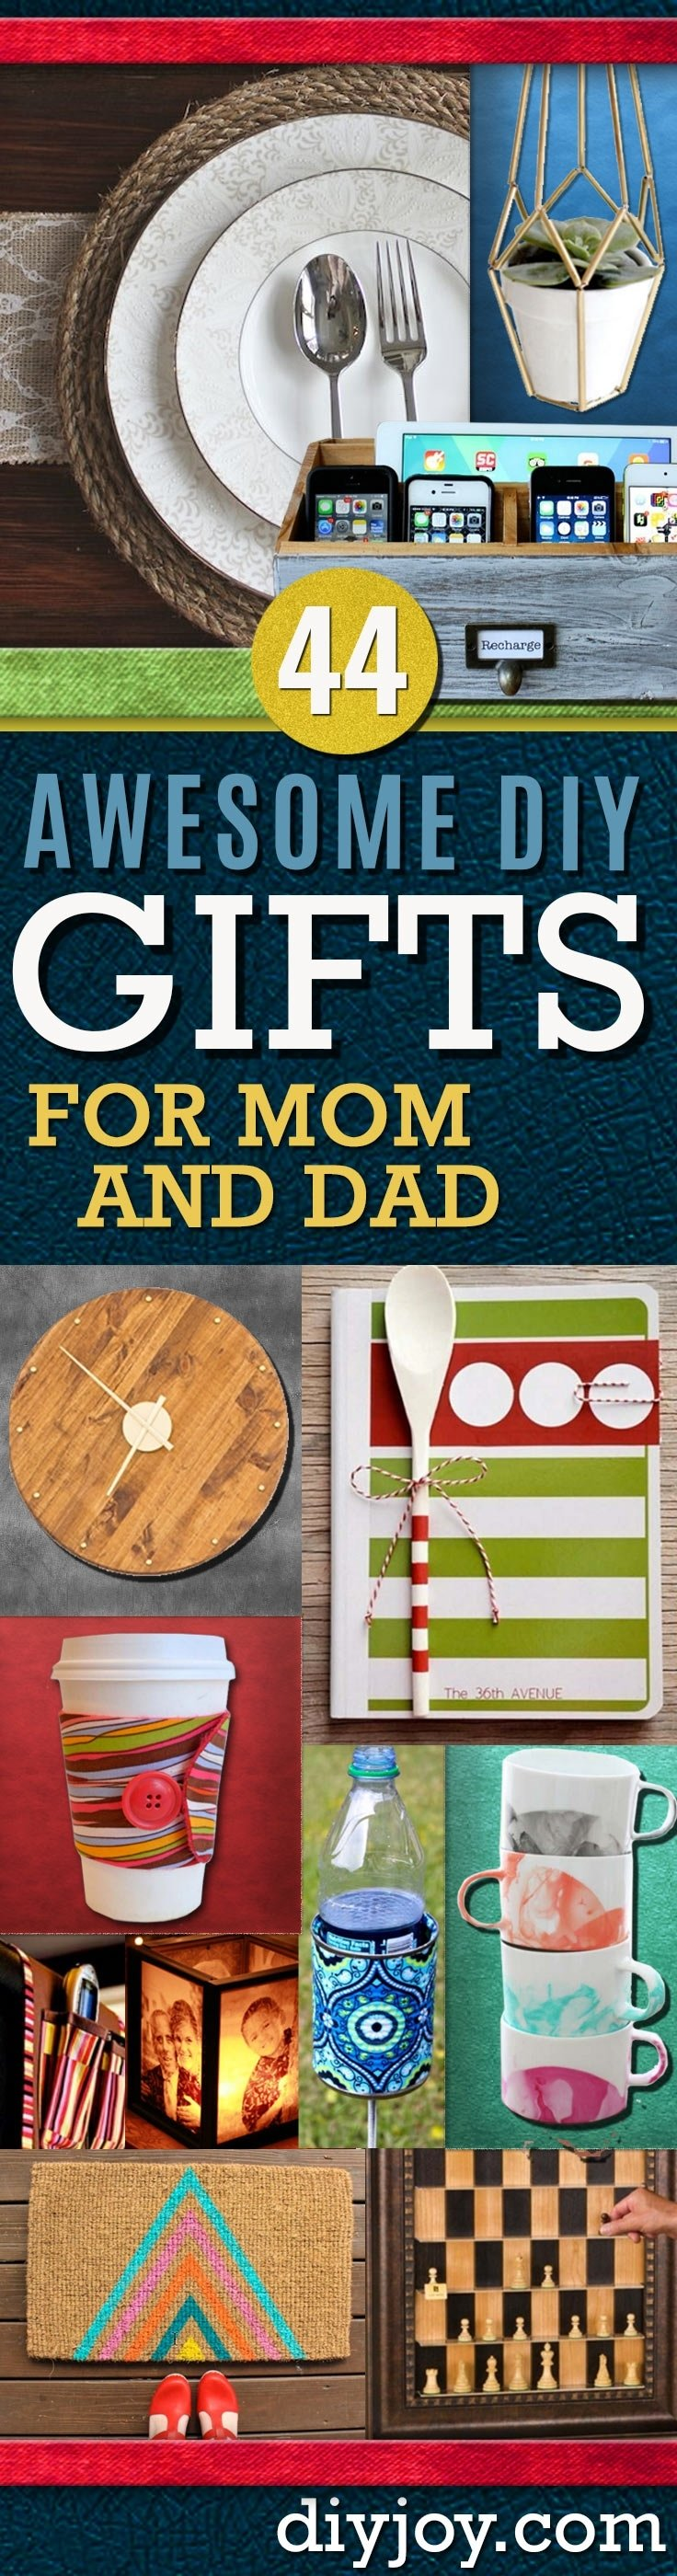 10 Elegant Christmas Gifts Ideas For Mom awesome diy gift ideas mom and dad will love